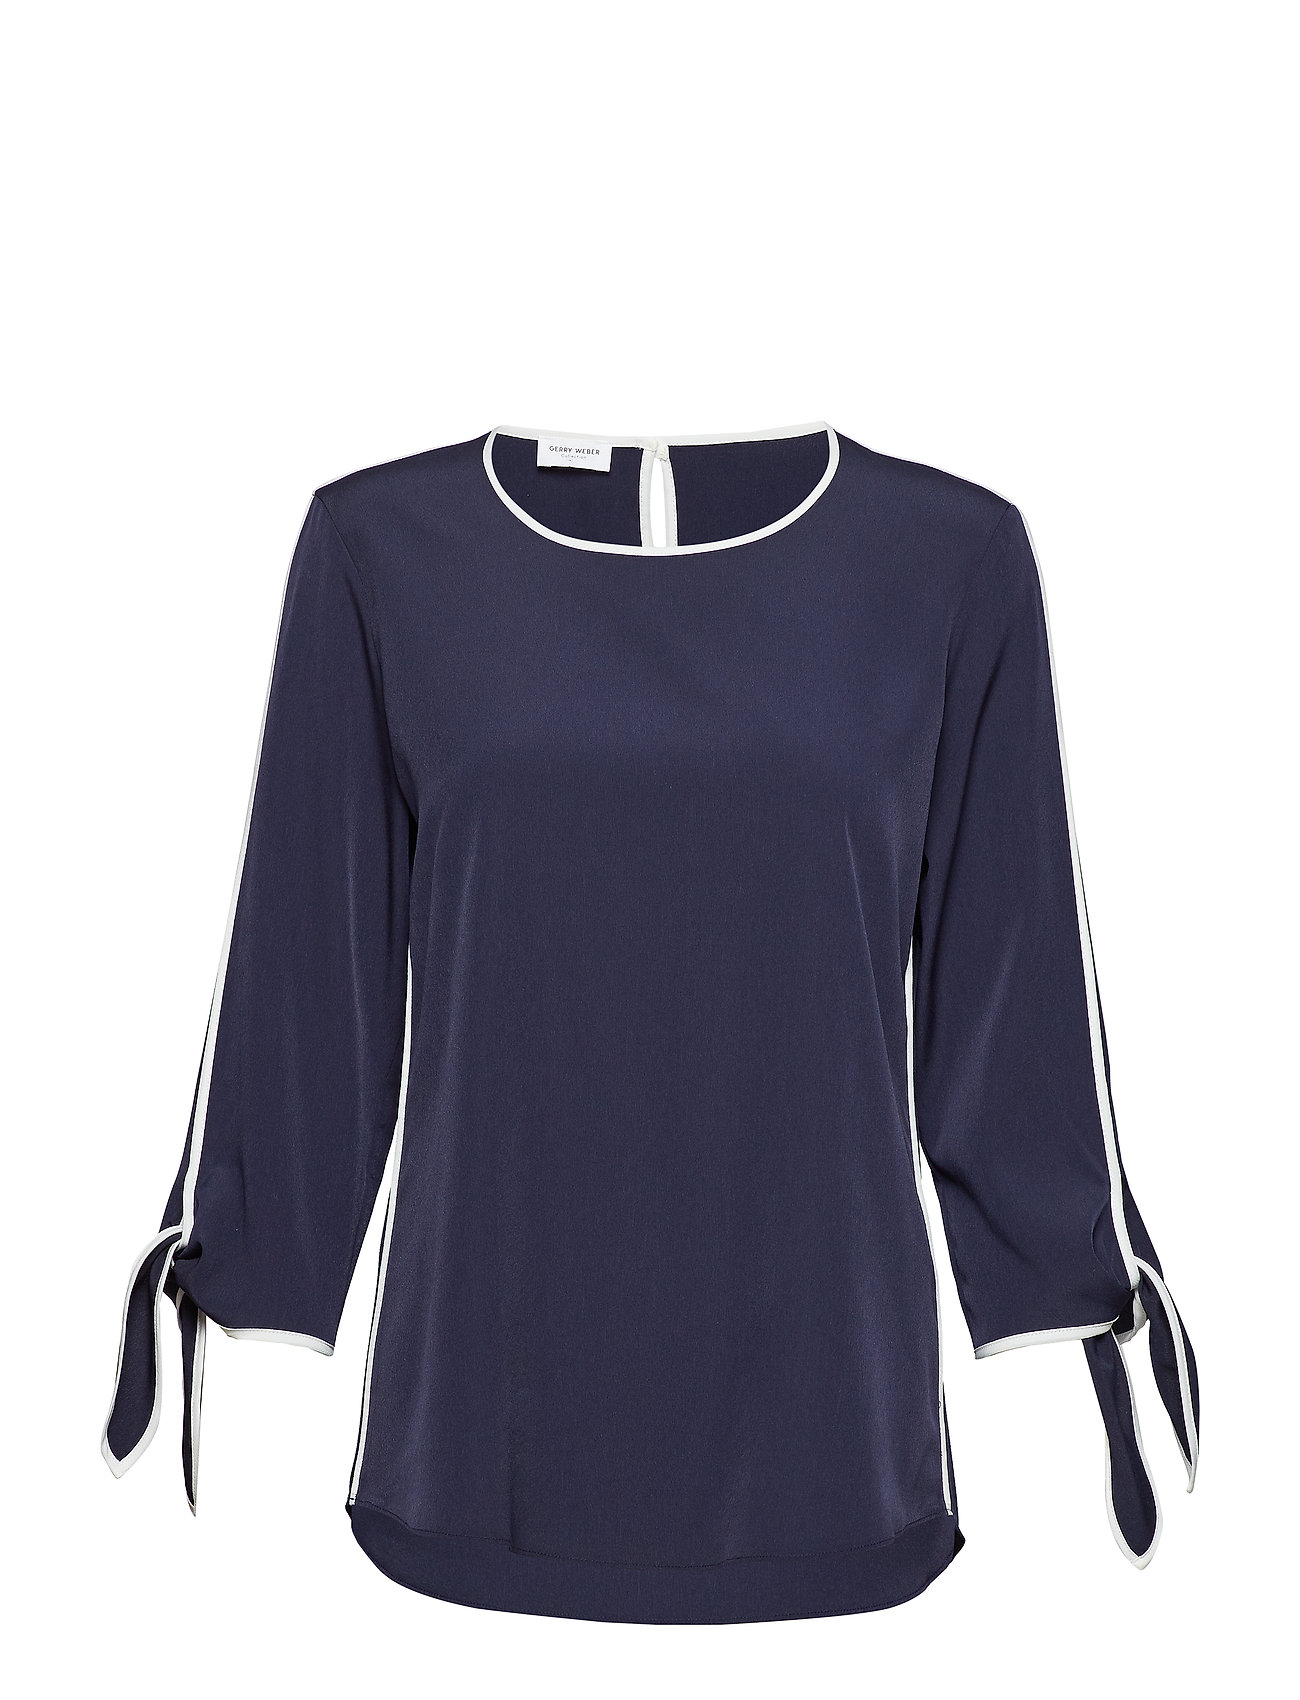 Gerry Weber BLOUSE 3/4-SLEEVE - BLUE/ECRU/WHITE PATCH